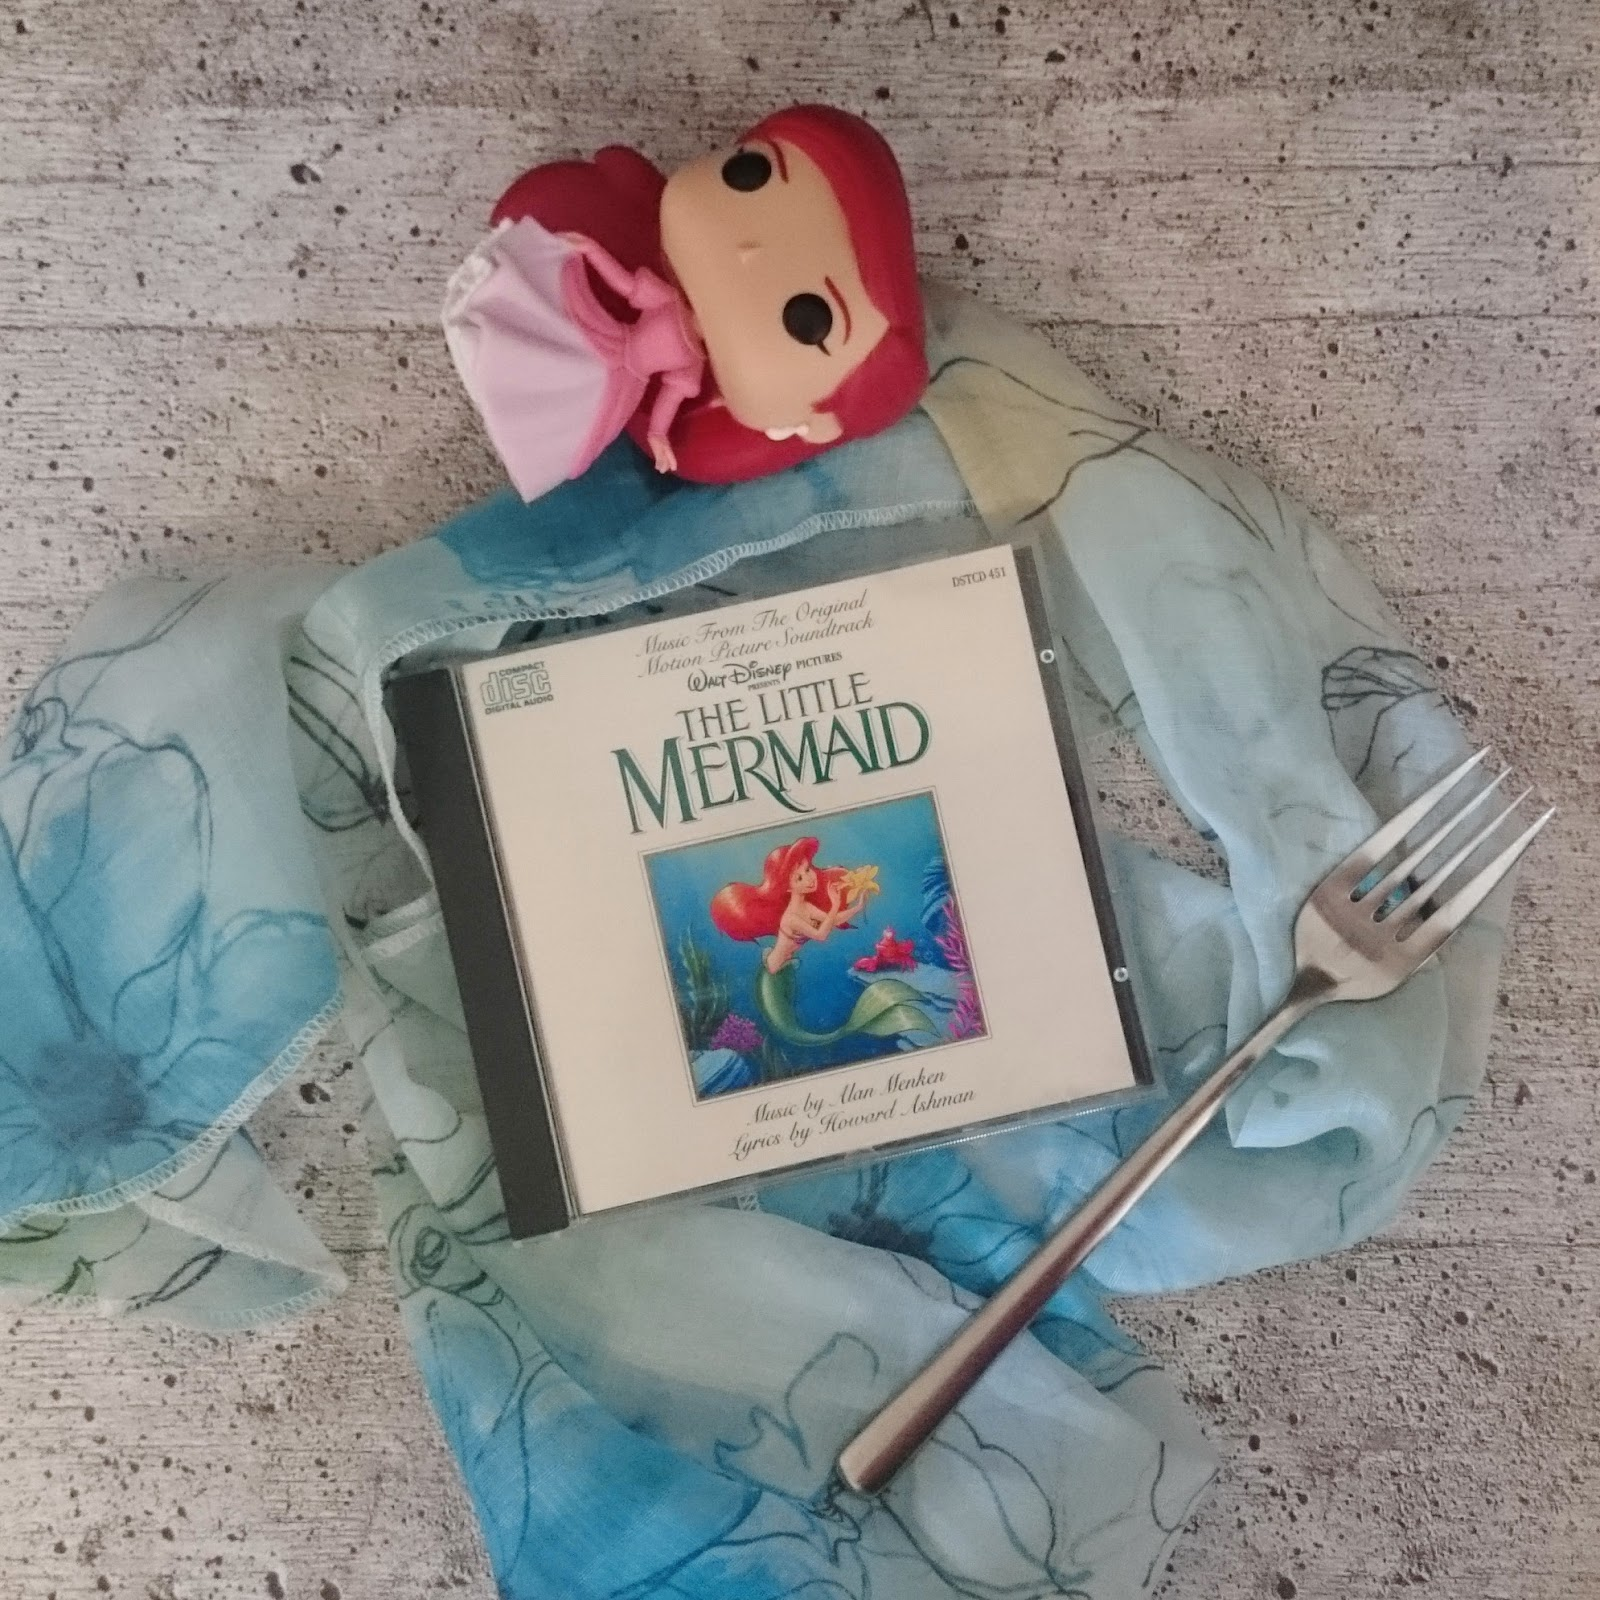 Beauty And The Beast Original Motion Picture Soundtrack: Lucciola: [Music Monday] The Little Mermaid: Music From